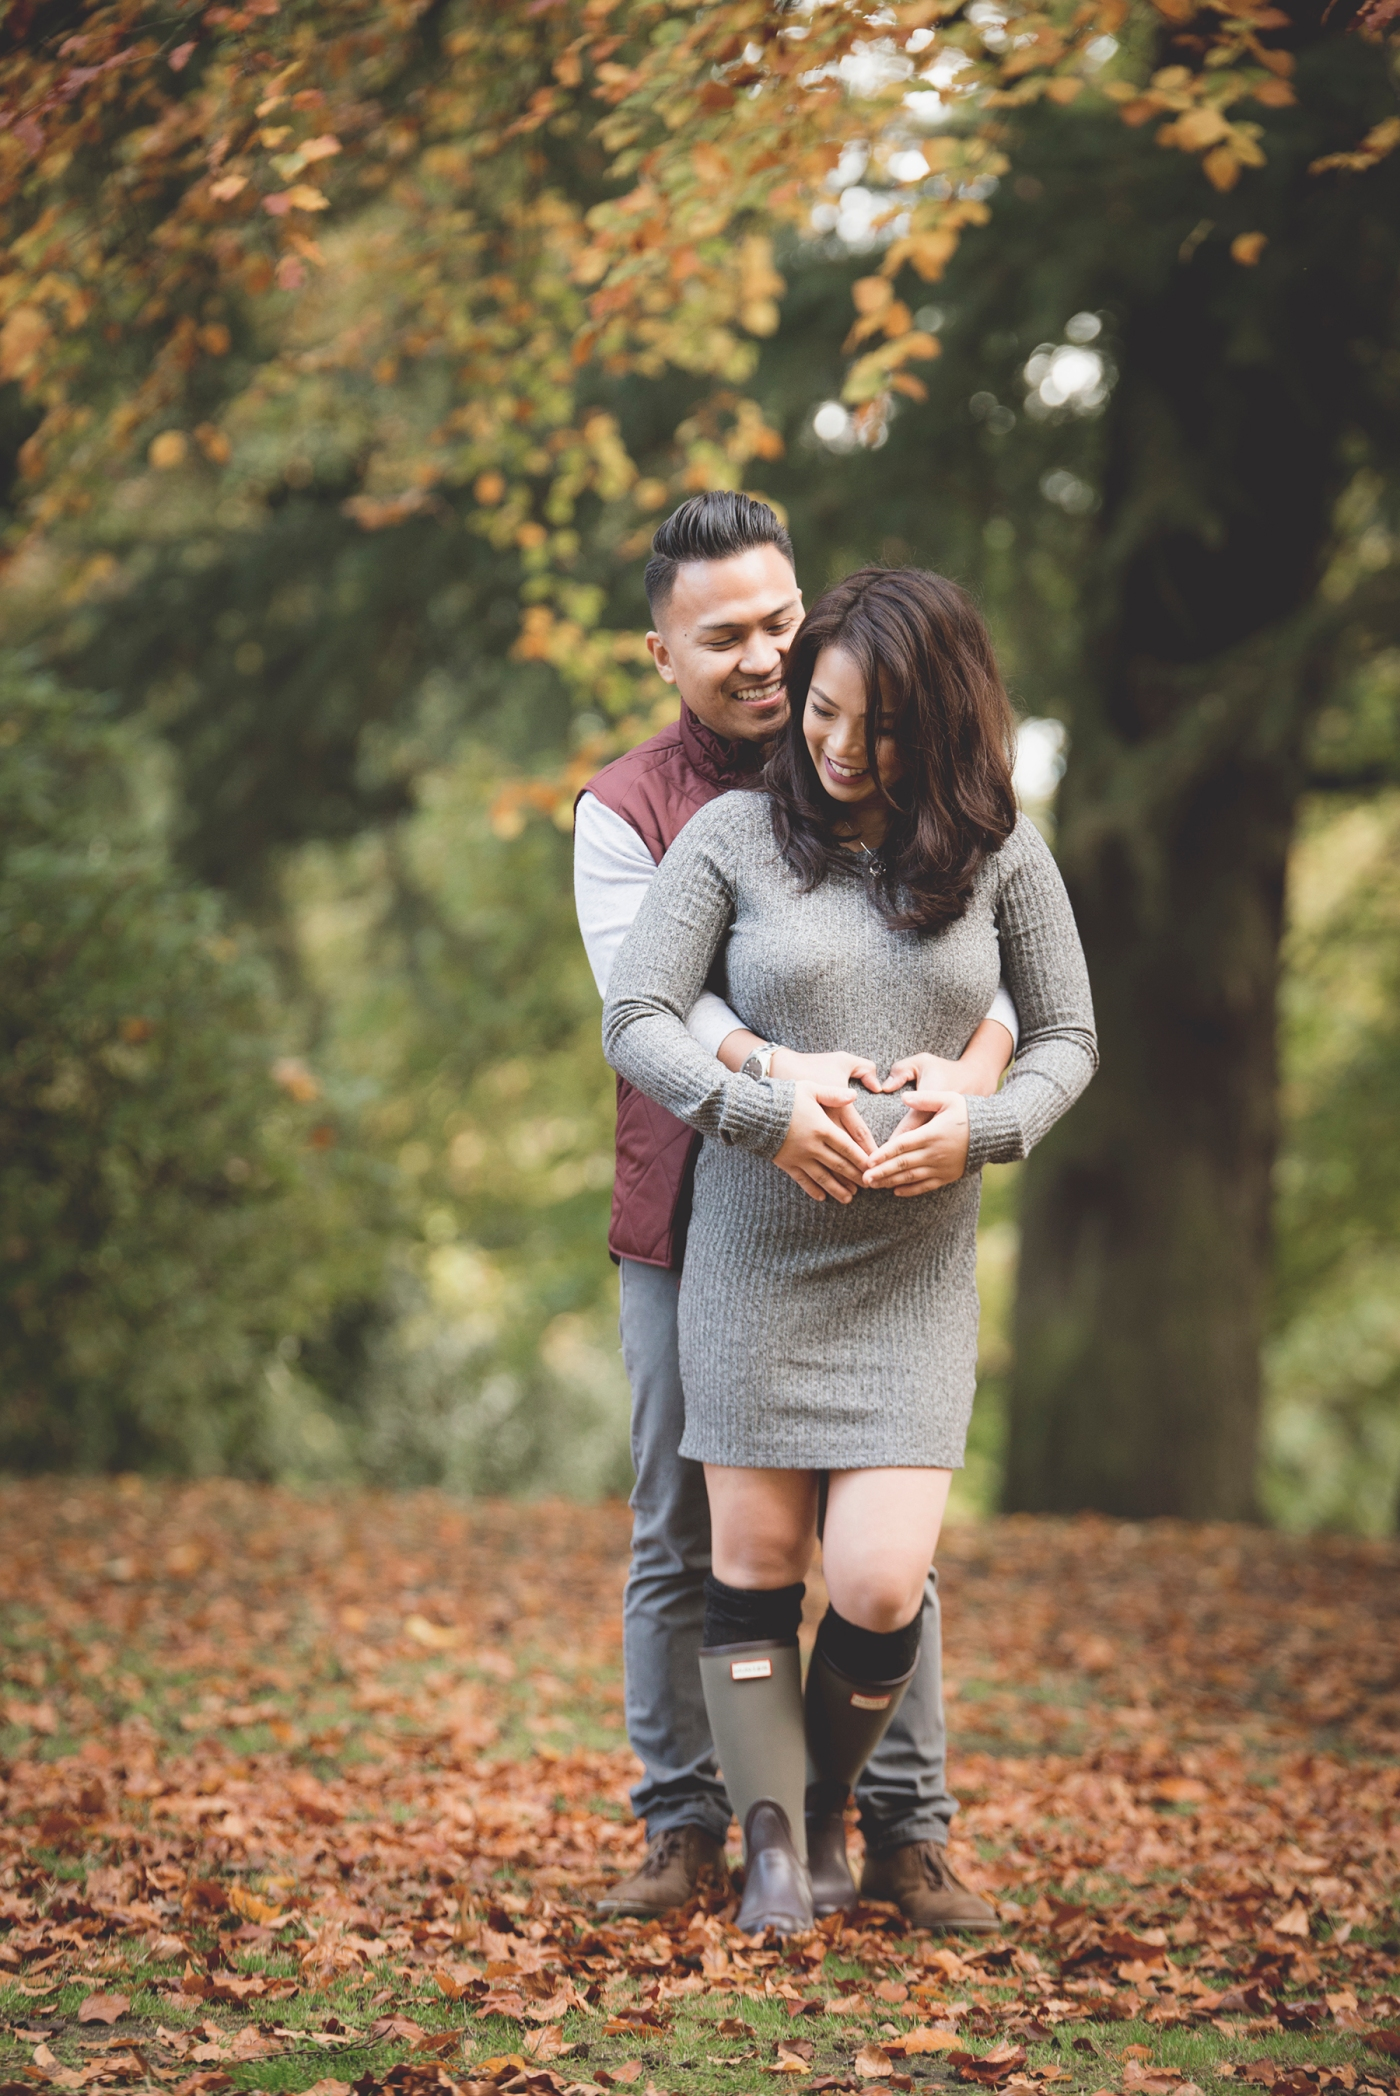 paula_p_maternity_the_royal_squirrel_seattle_family_photographer_2016_fall_dsc_7858